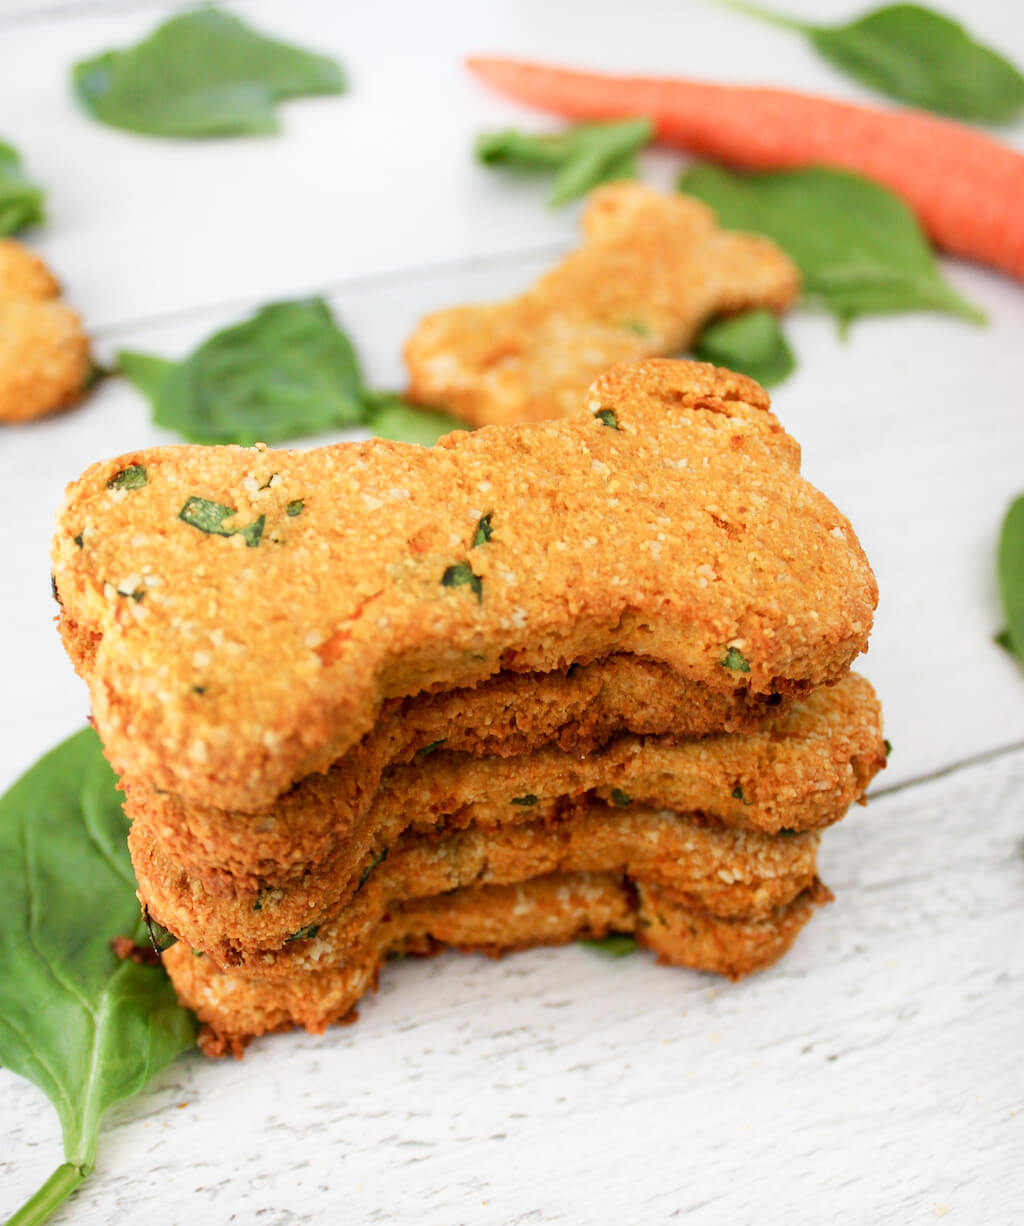 Grain Free Carrot And Spinach Dog Treats The Produce Moms